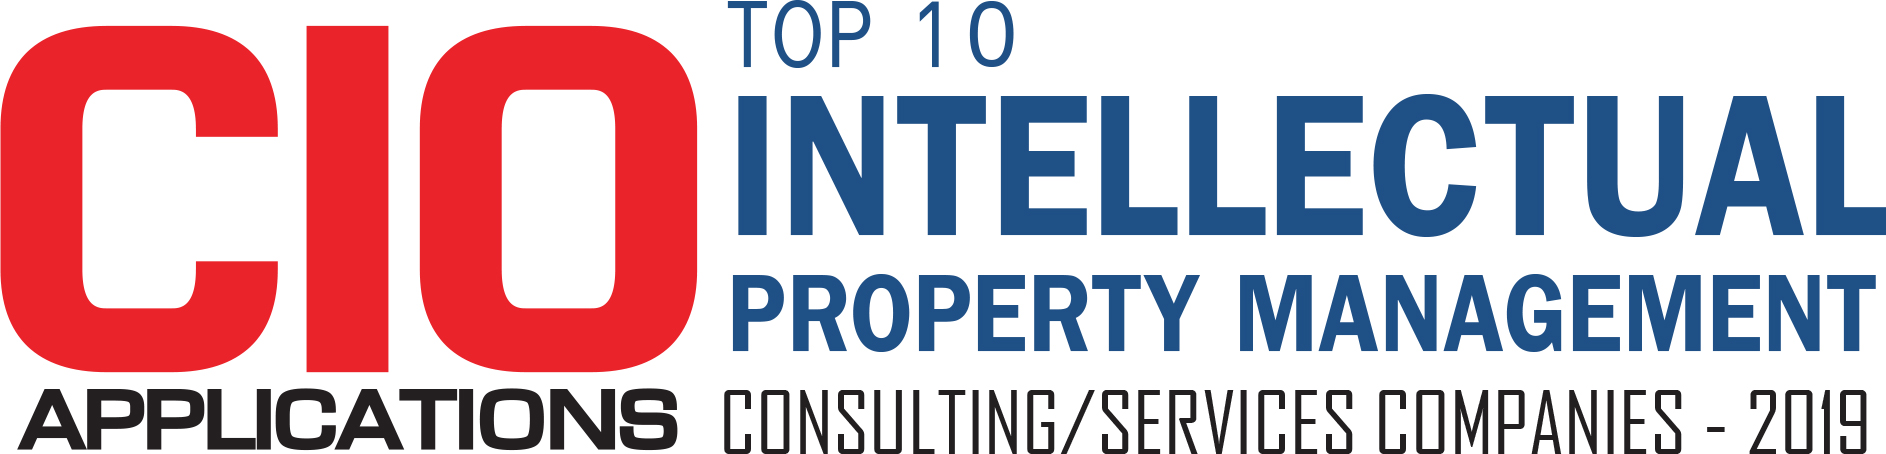 Top 10 Intellectual Property Management Consulting/Services Companies - 2019